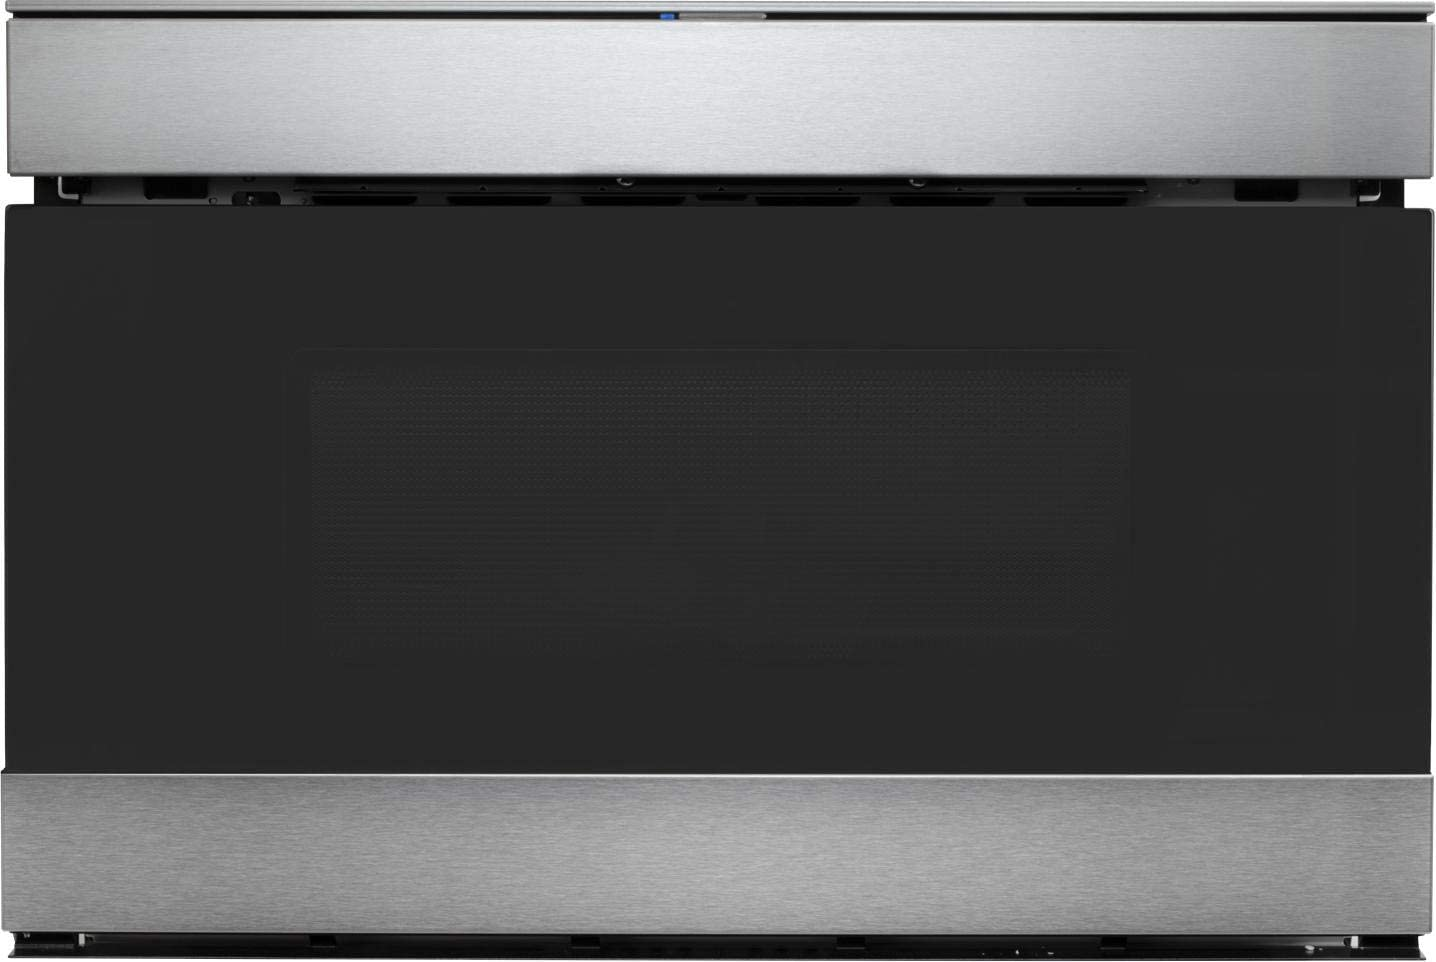 "Sharp SMD2489ES 24"" loT Microwave Drawer with 1.2 cu. ft. Capacity, 950 Watts, 11 Power Levels, Edge-to-Edge Black Glass, in Stainless Steel"